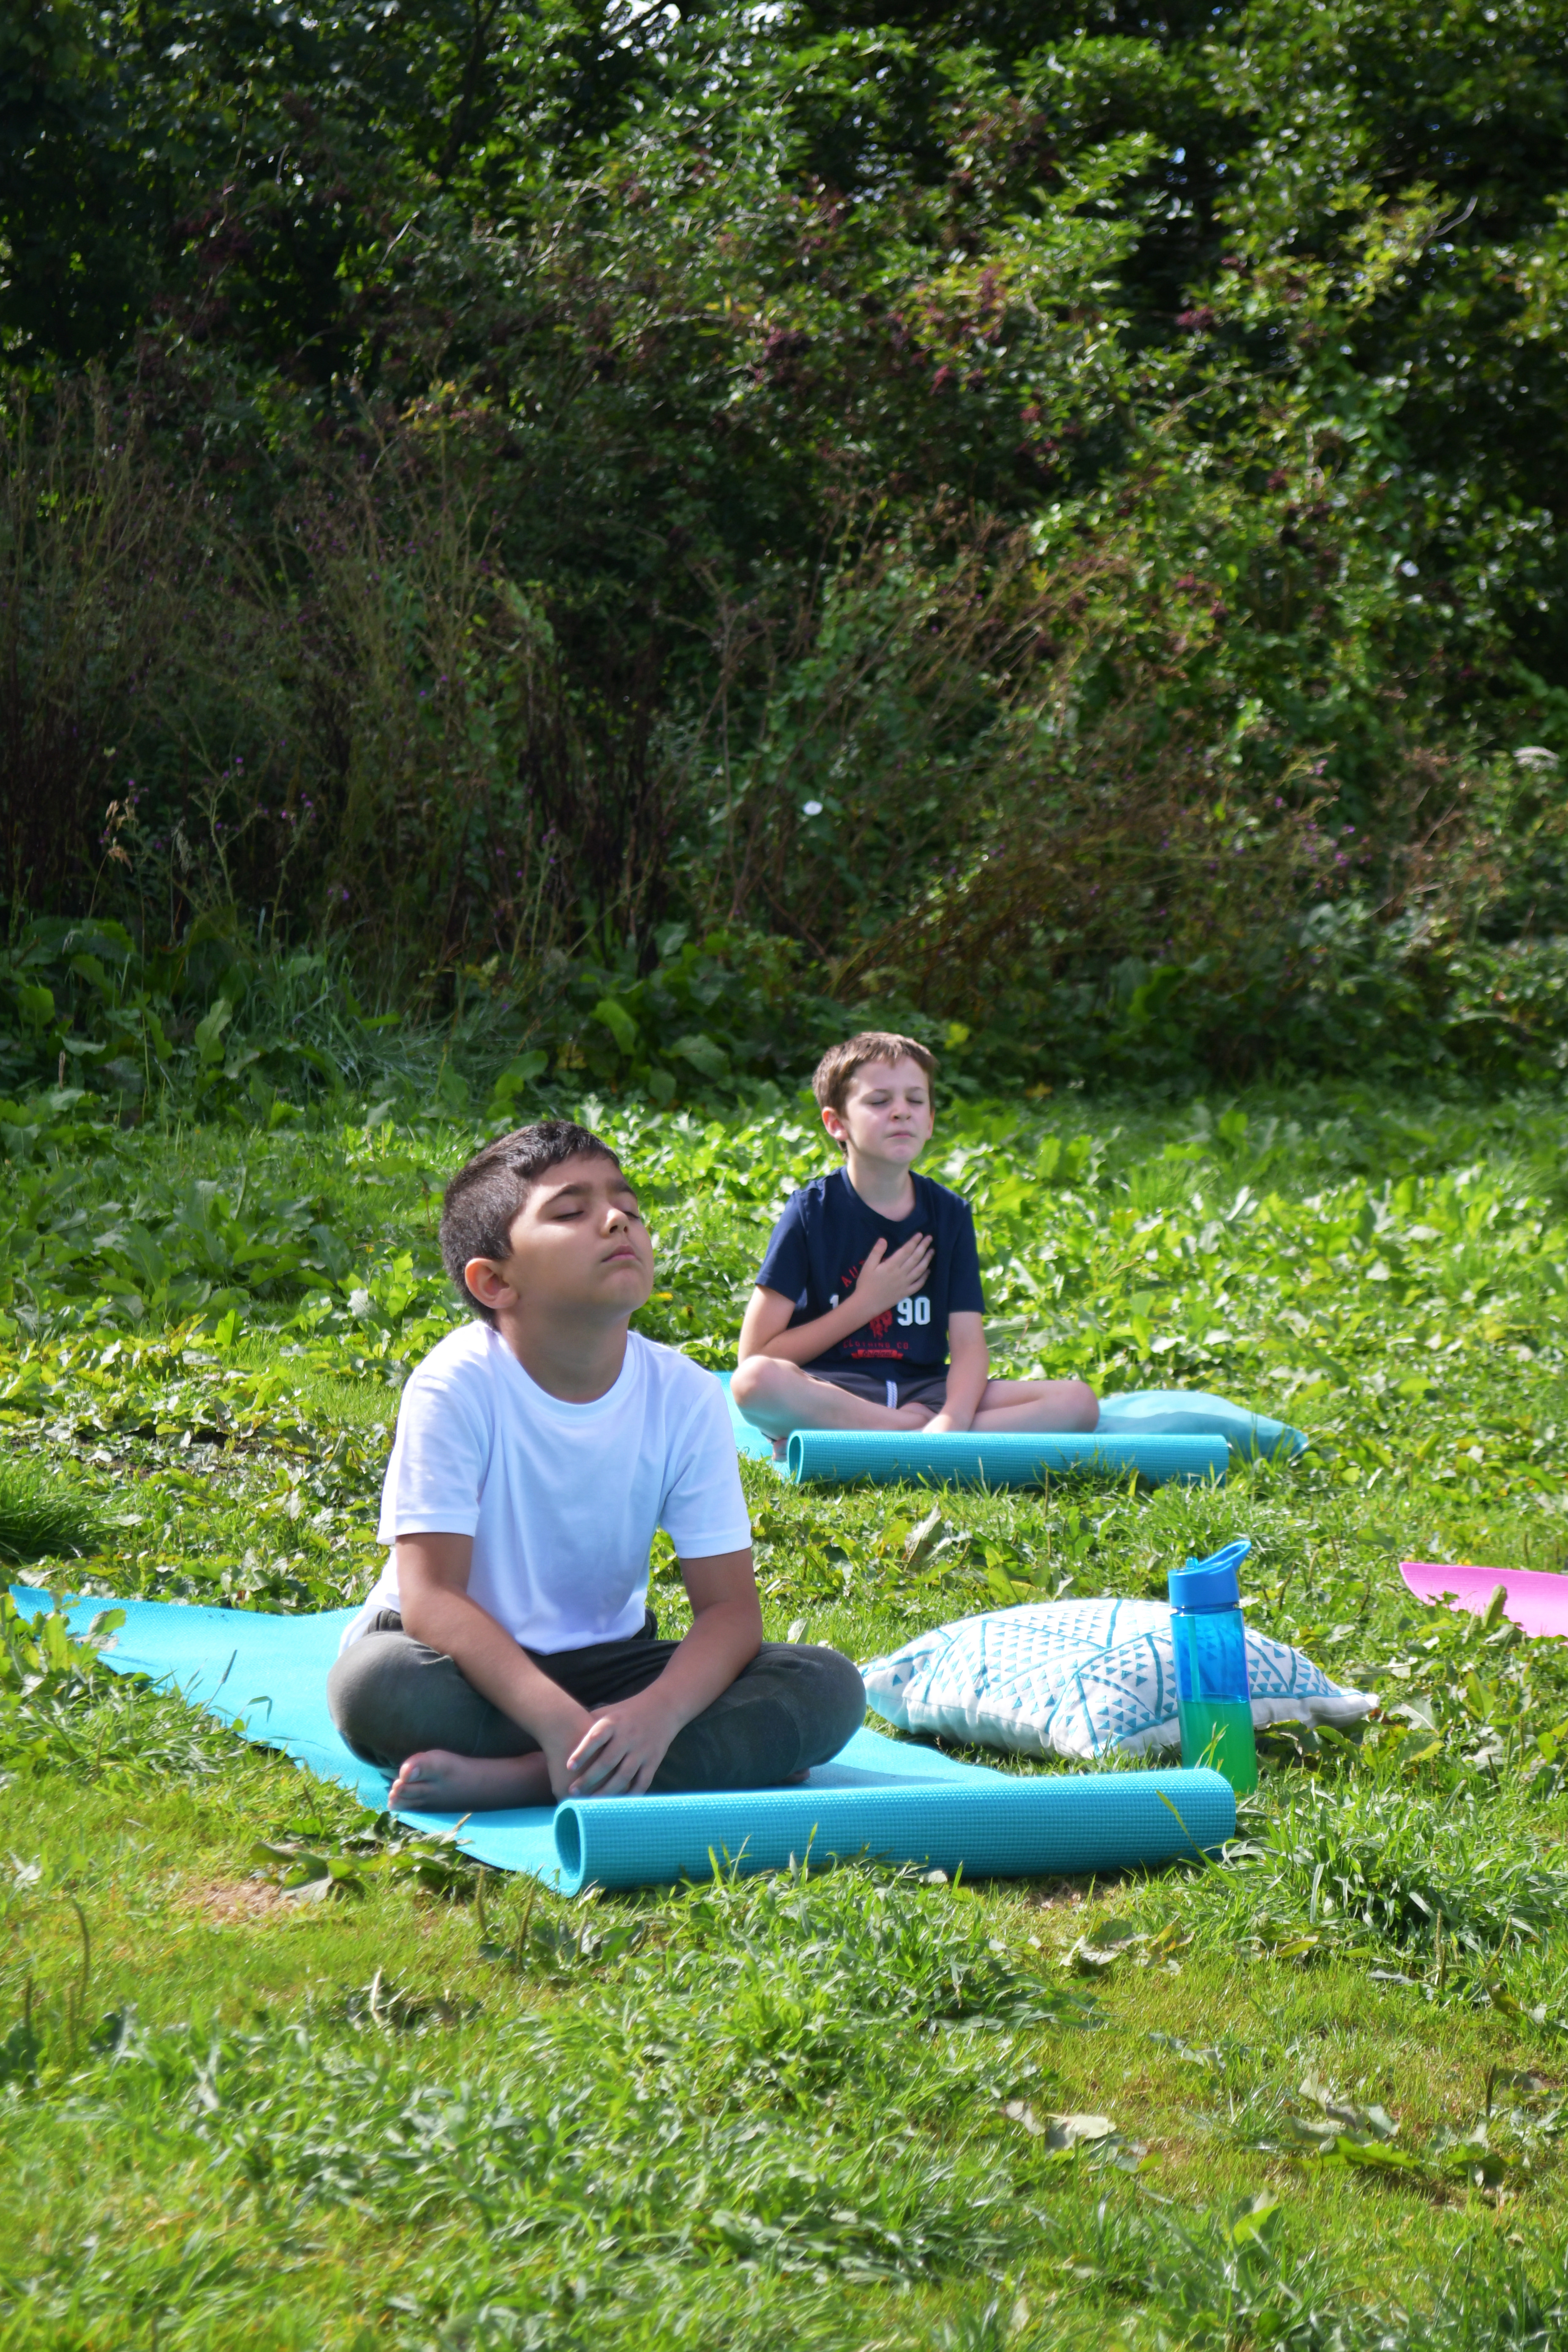 Kids yoga for 5-8yrs in Lagos, Portugal